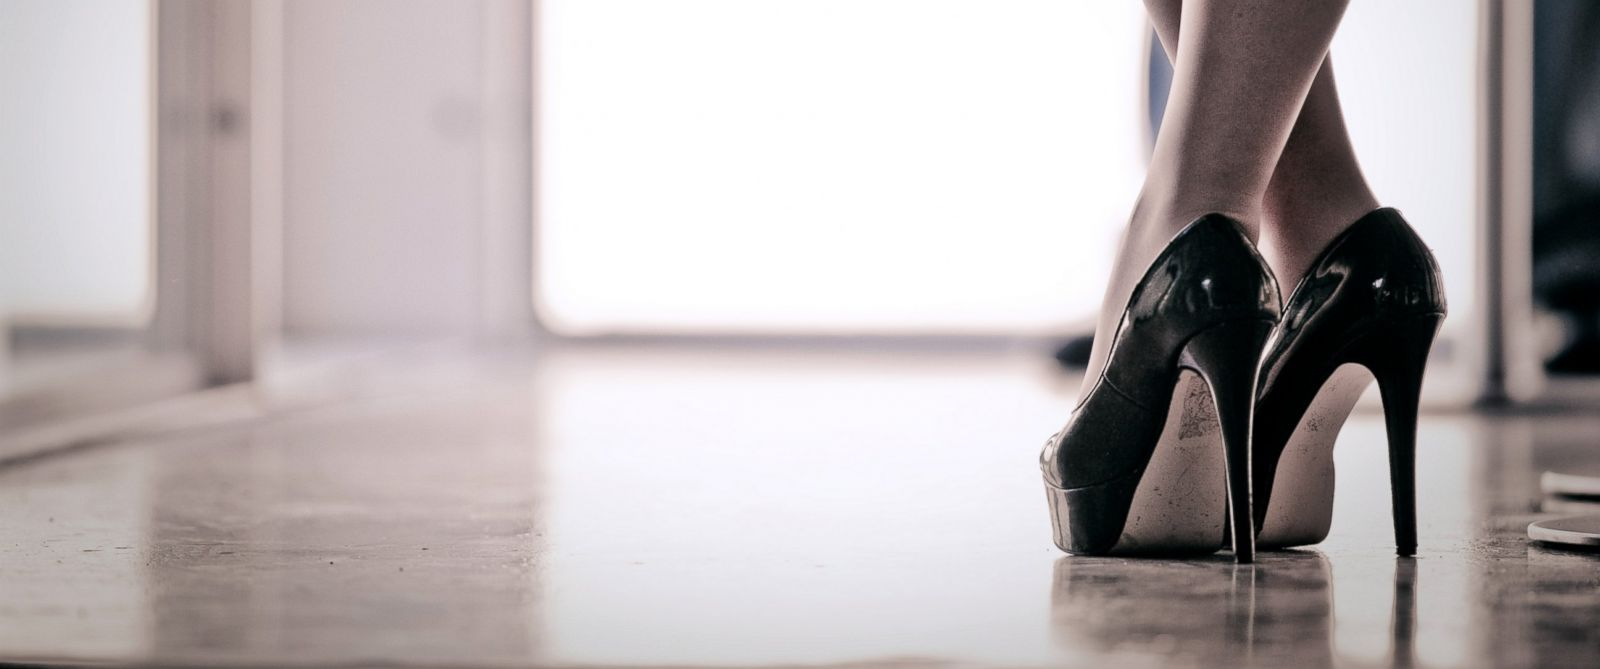 PHOTO: What really happens to your body when you wear high heels?